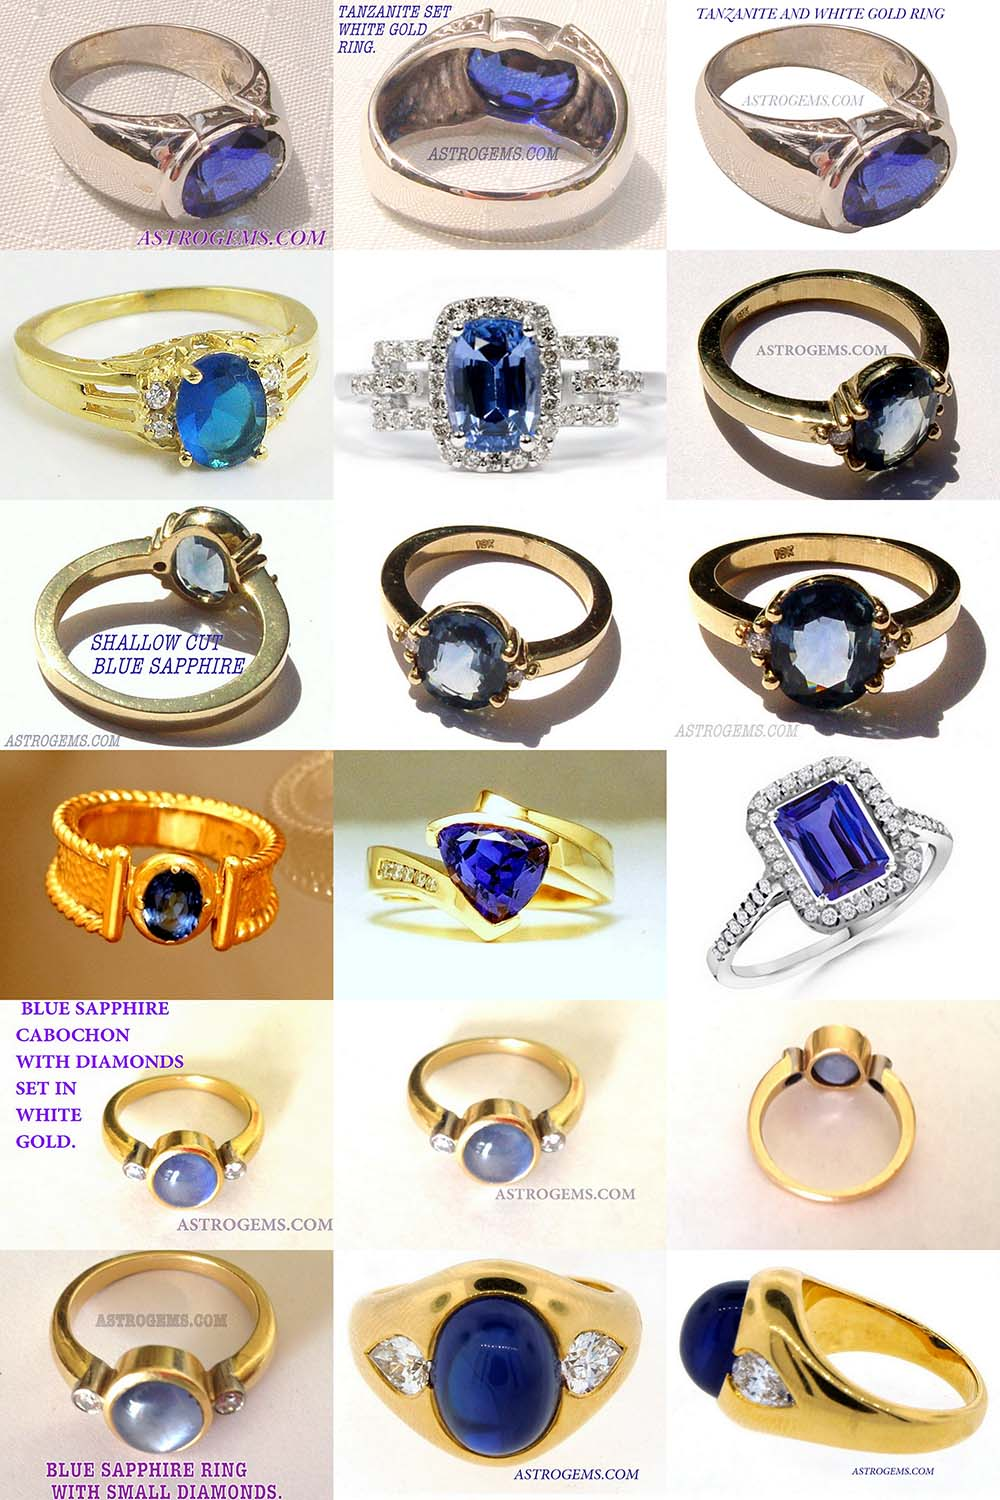 Astrogems makes a large range of astrological blue sapphire rings.